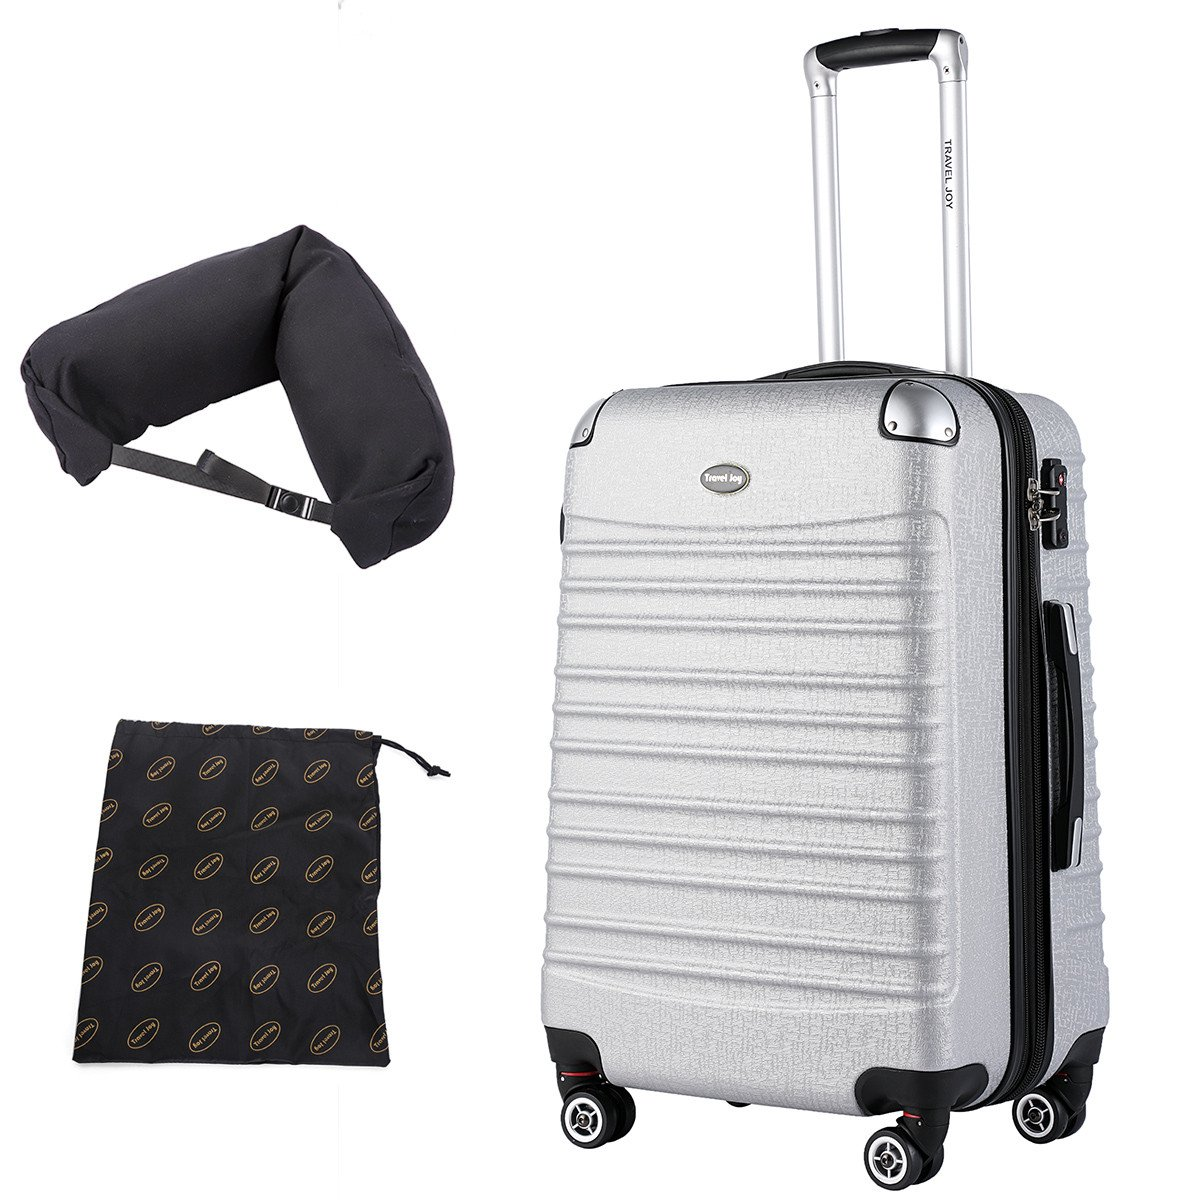 Expandable Hardside Spinner Carry On Luggage, Lightweight Carry Ons, with Free Gifts, 20 inch